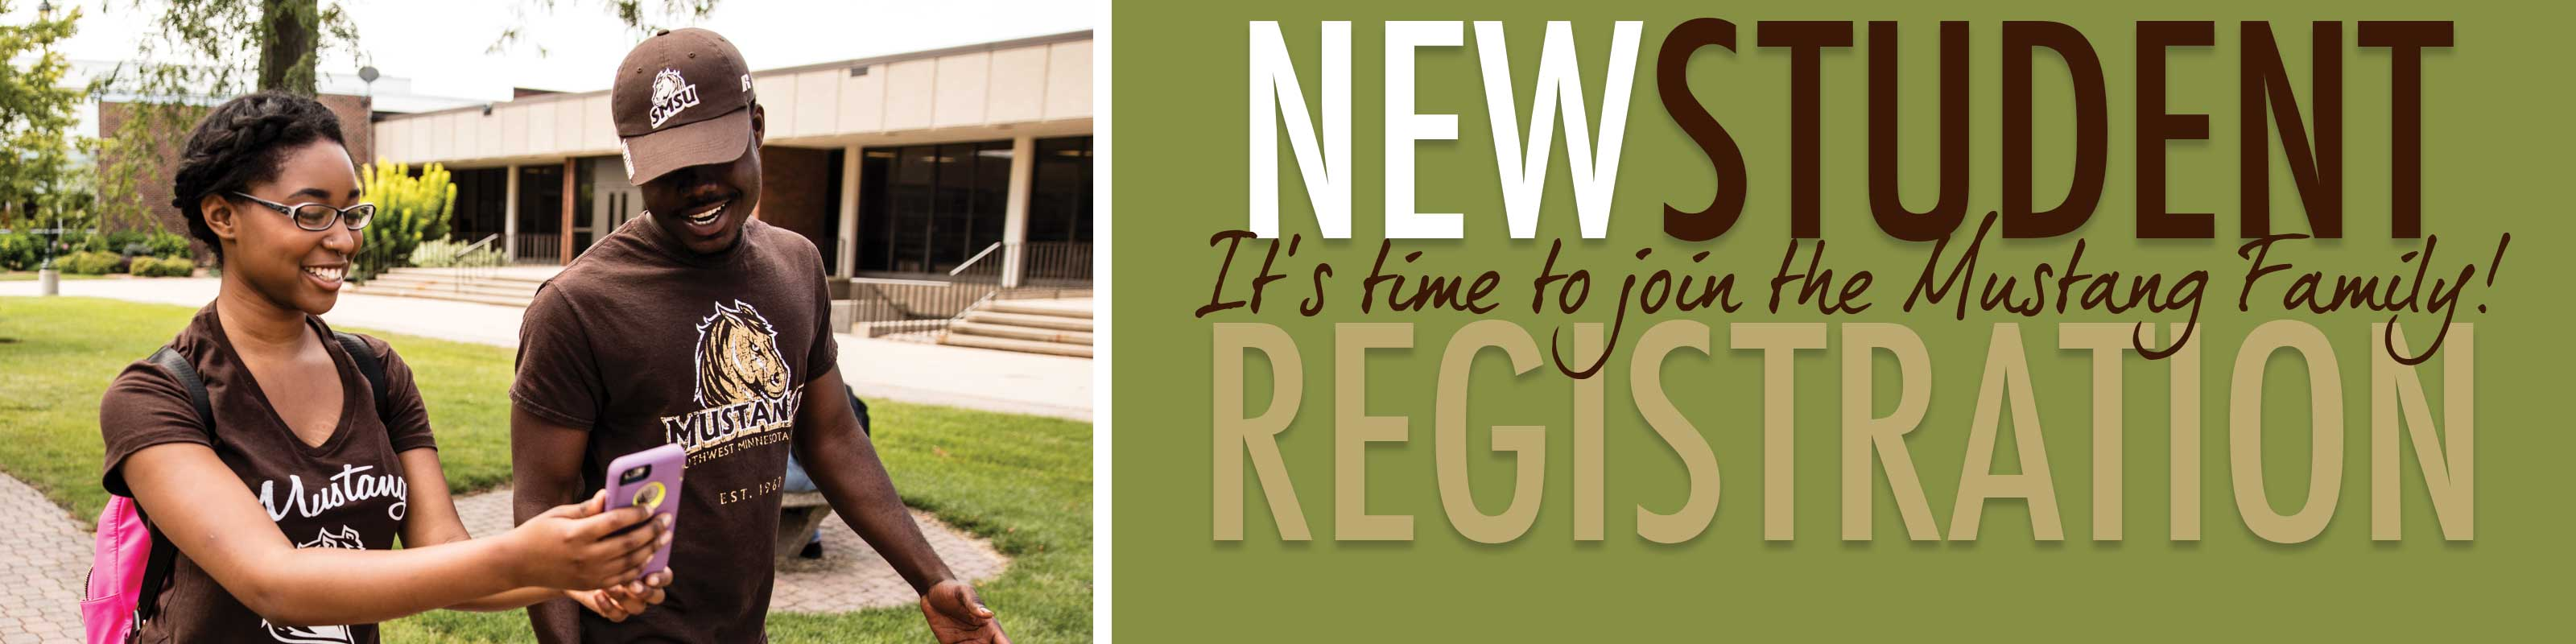 New Student Registration - It's time to join the Mustang Family!